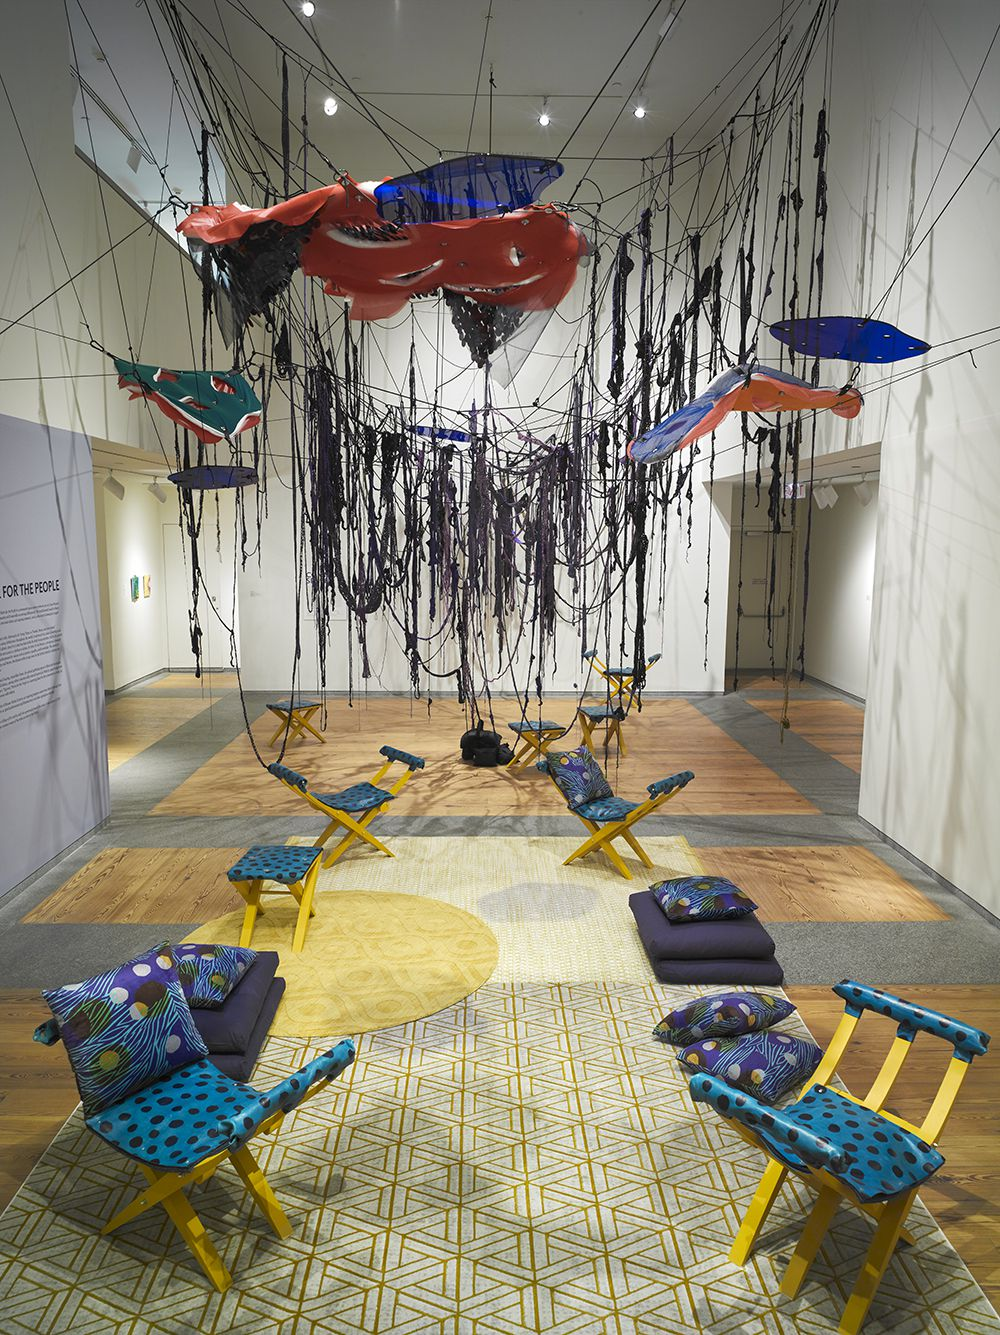 Gallery installation of blue and yellow patterned chairs, yellow patterned carpets, blue patterned pillows, and red, green, and blue hanging from the ceiling.